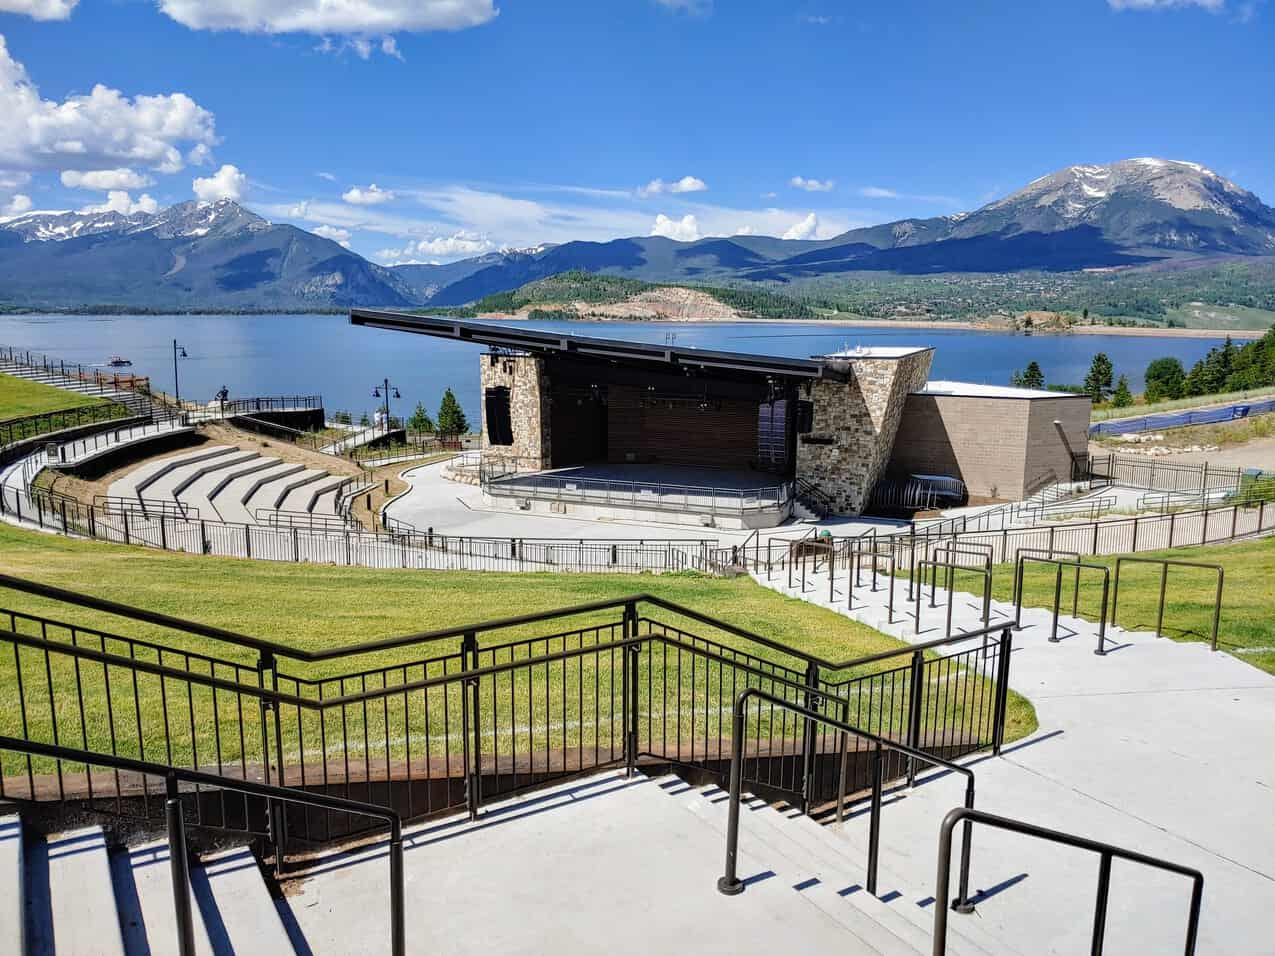 Dillon Ampitheater in the summer